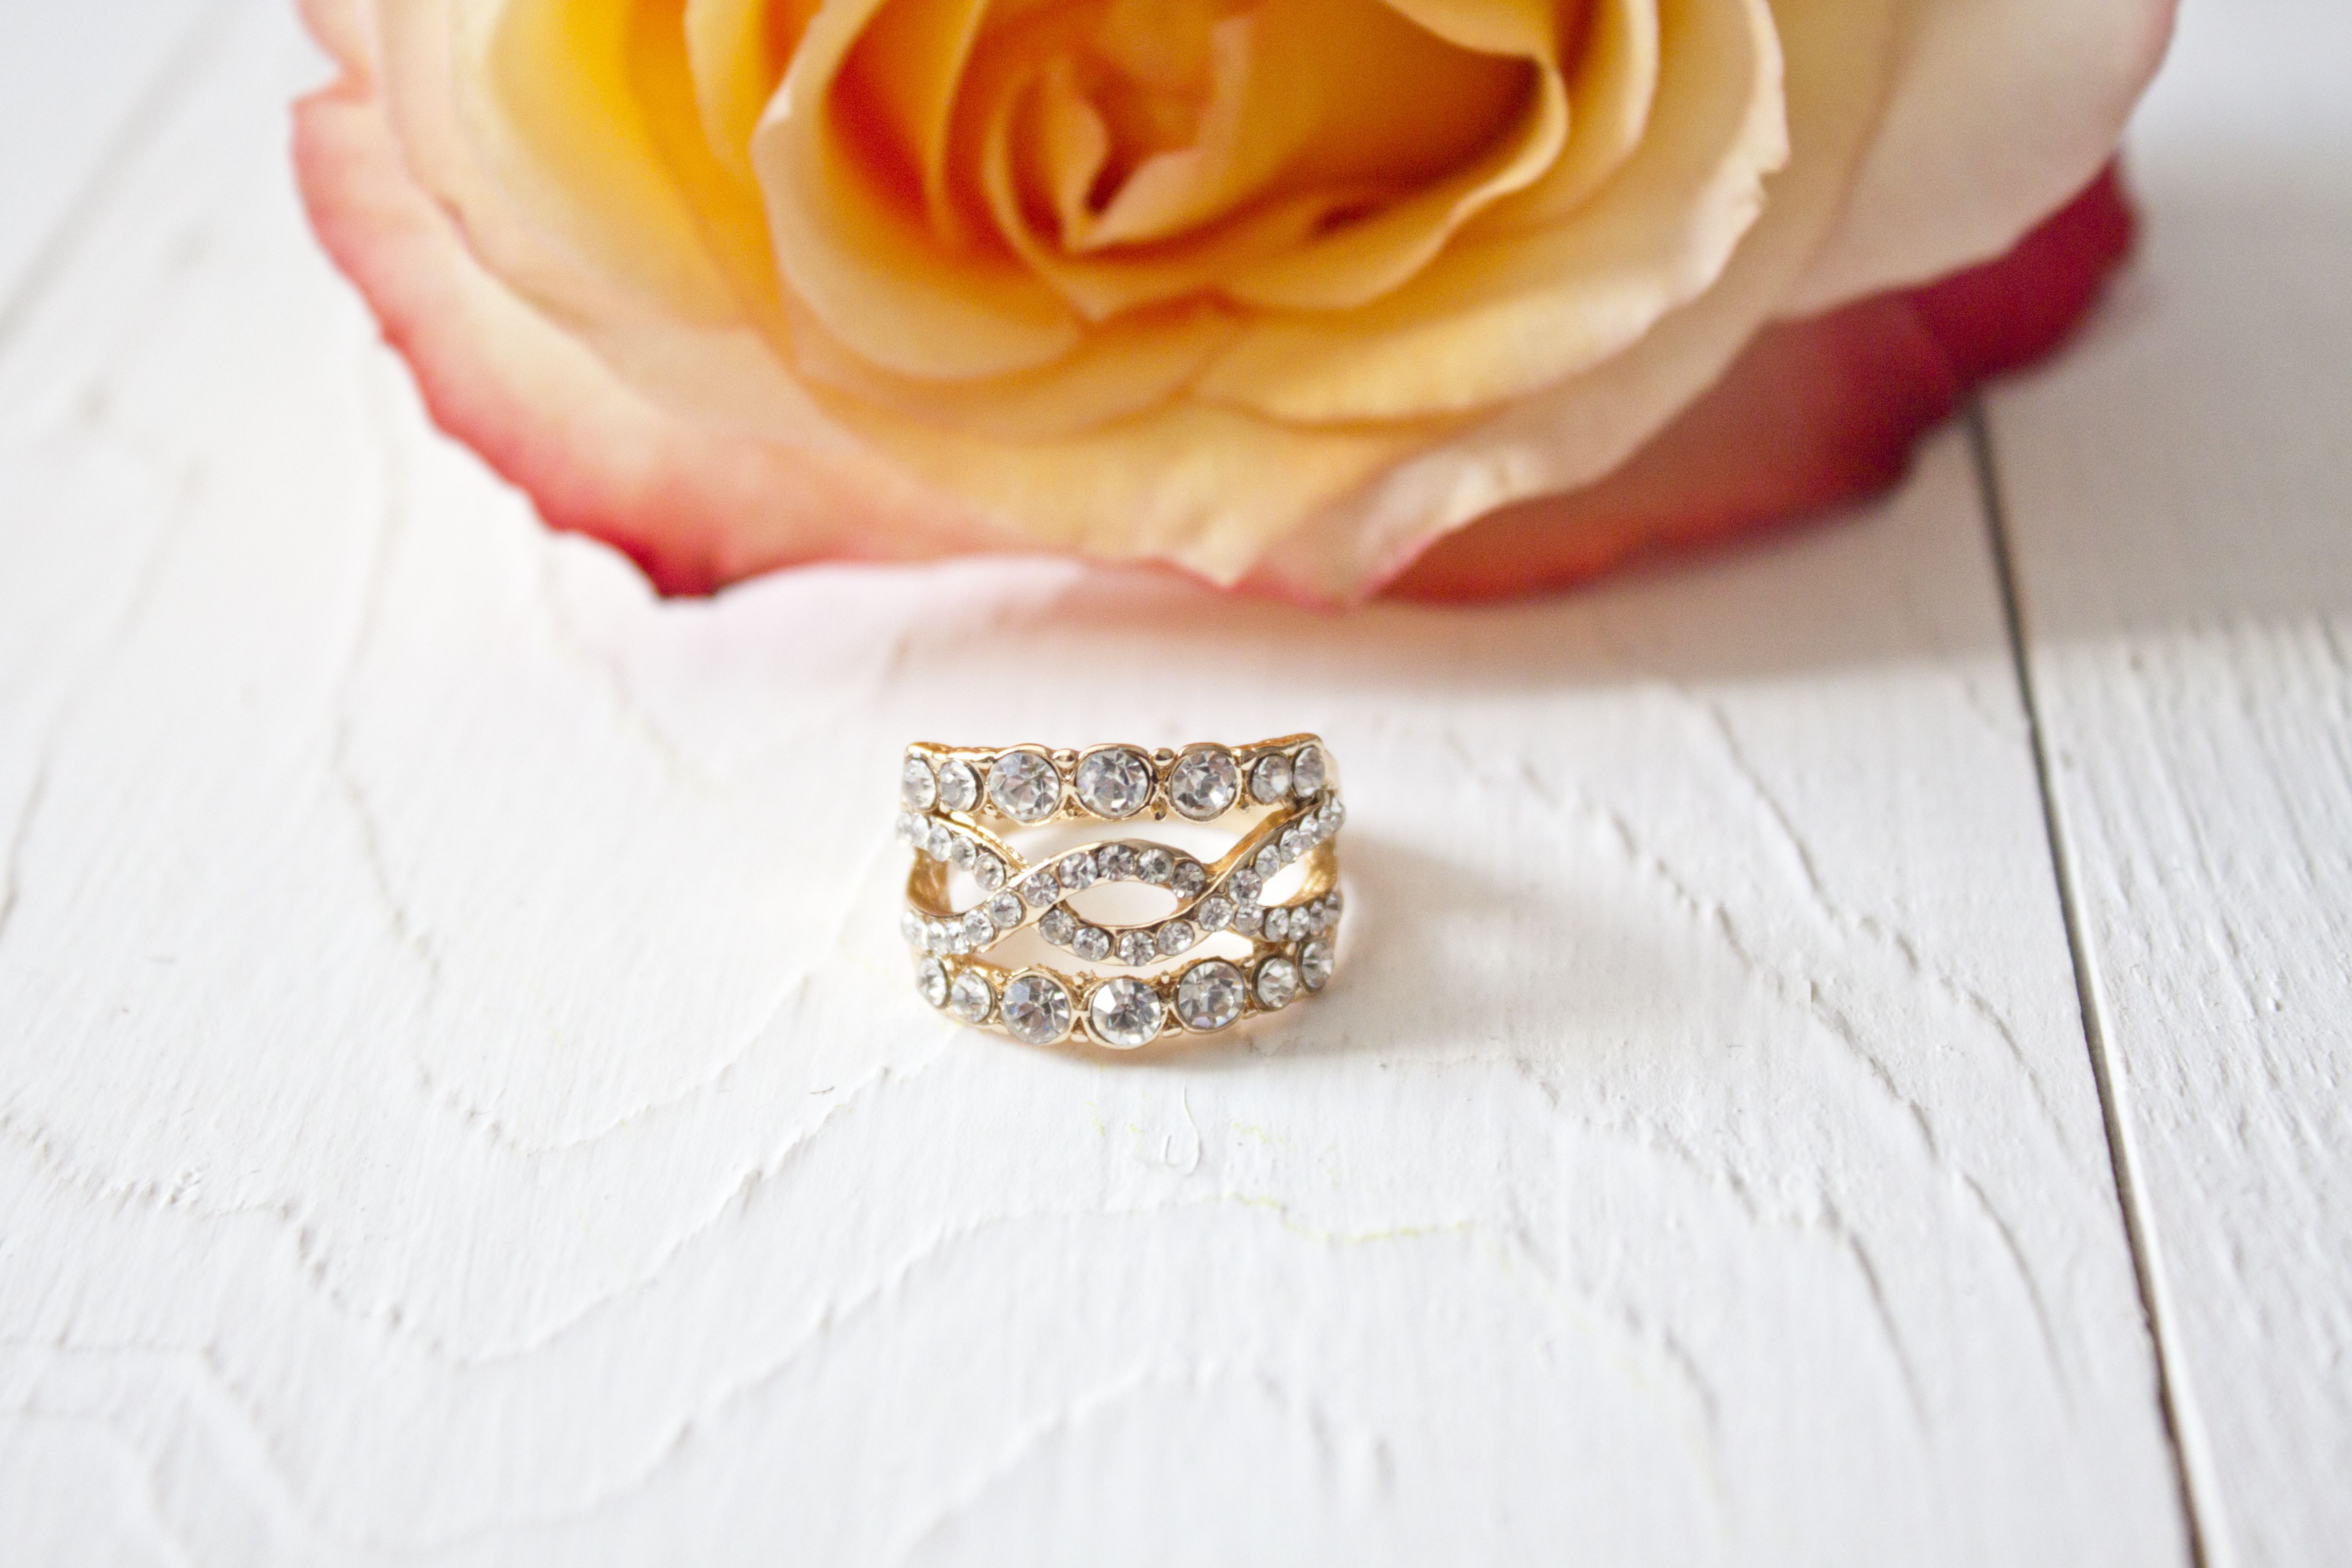 Gift Ideas for Your 10th Wedding Anniversary